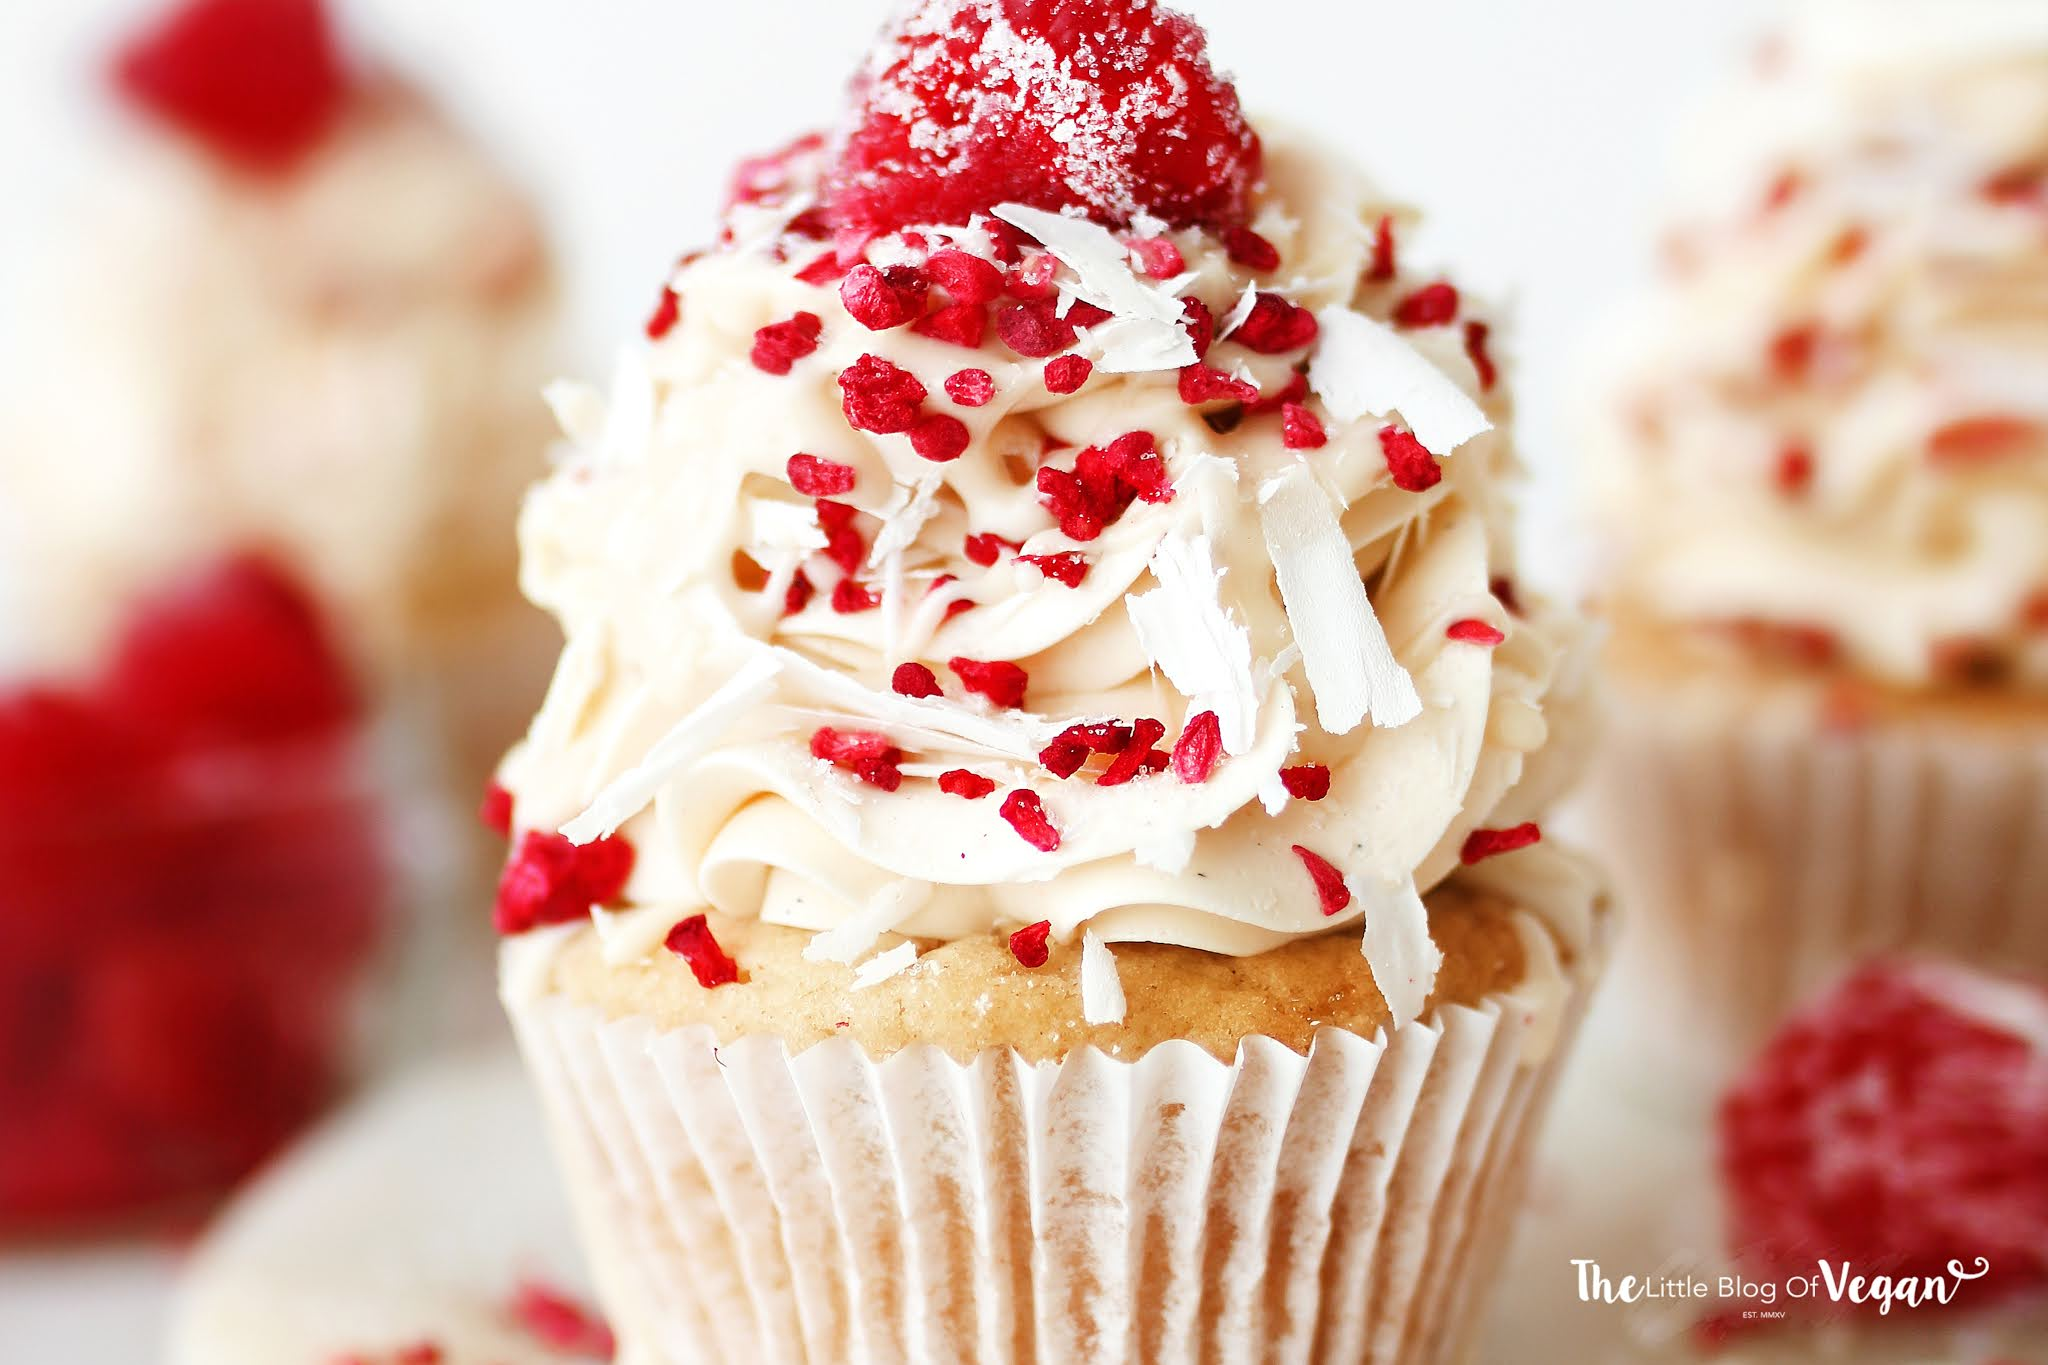 Vegan Raspberry and White Chocolate Cupcakes recipe